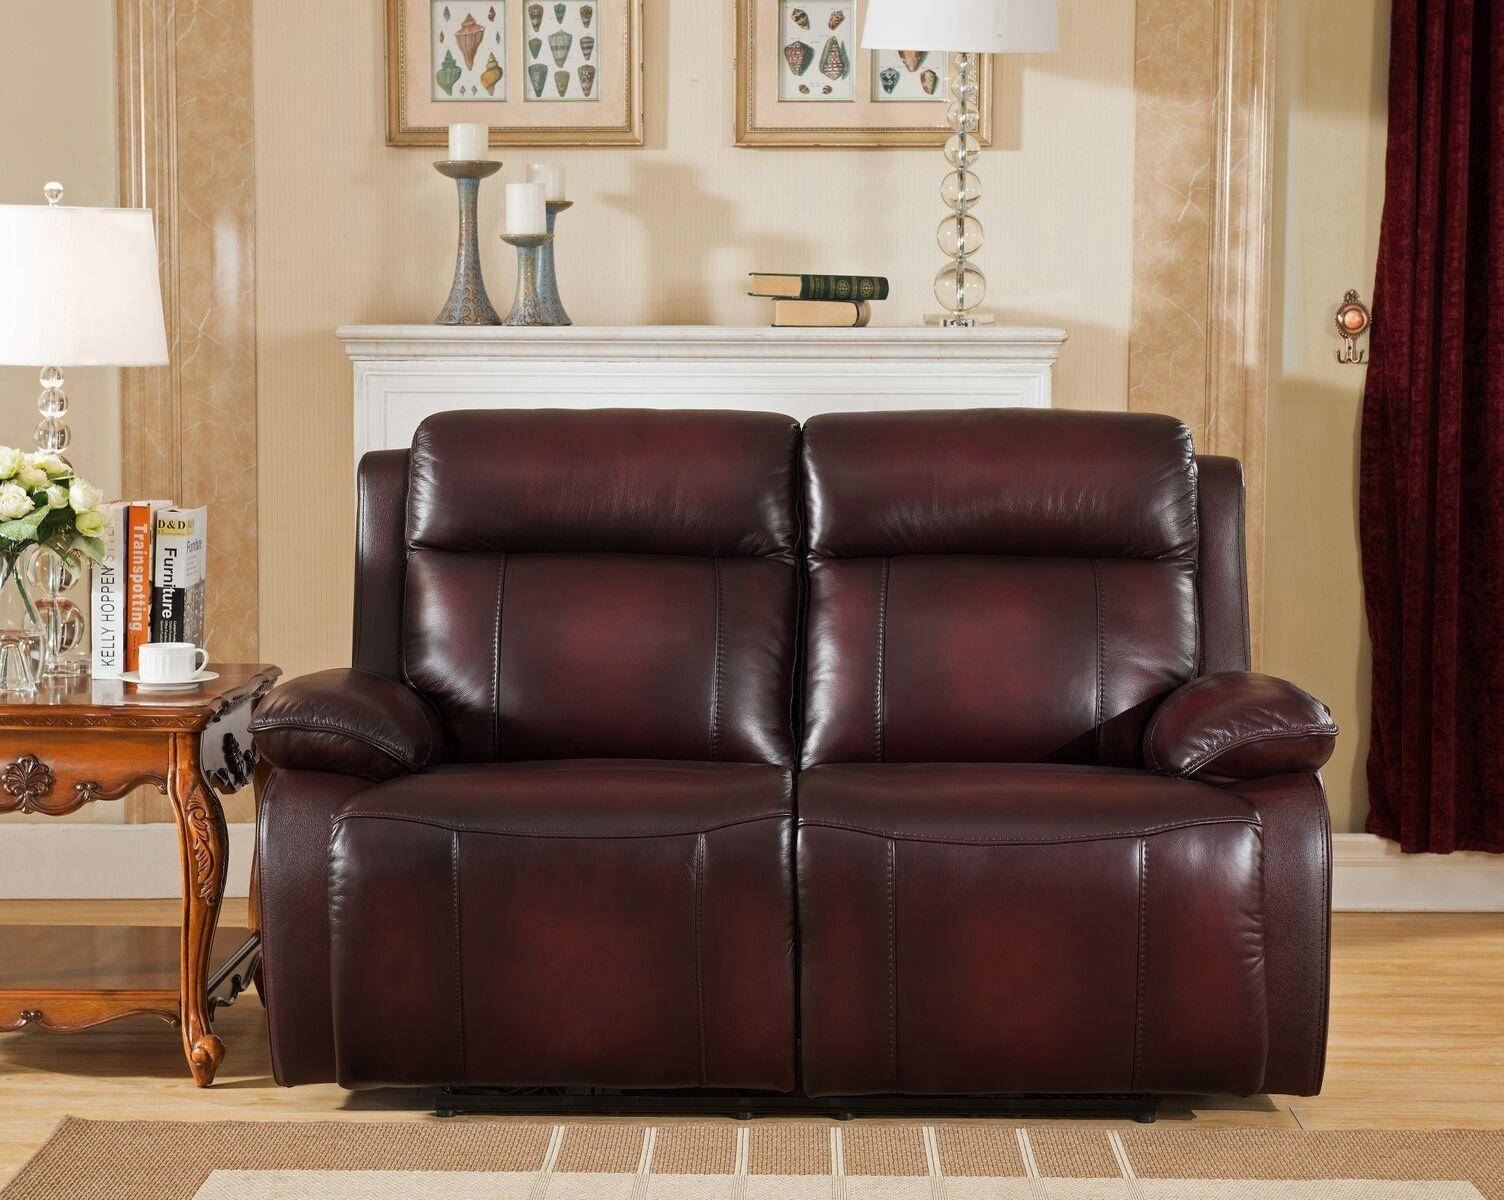 amax faraday power recliner brown red genuine leather sofa set 2pcs rh nyfurnitureoutlets com